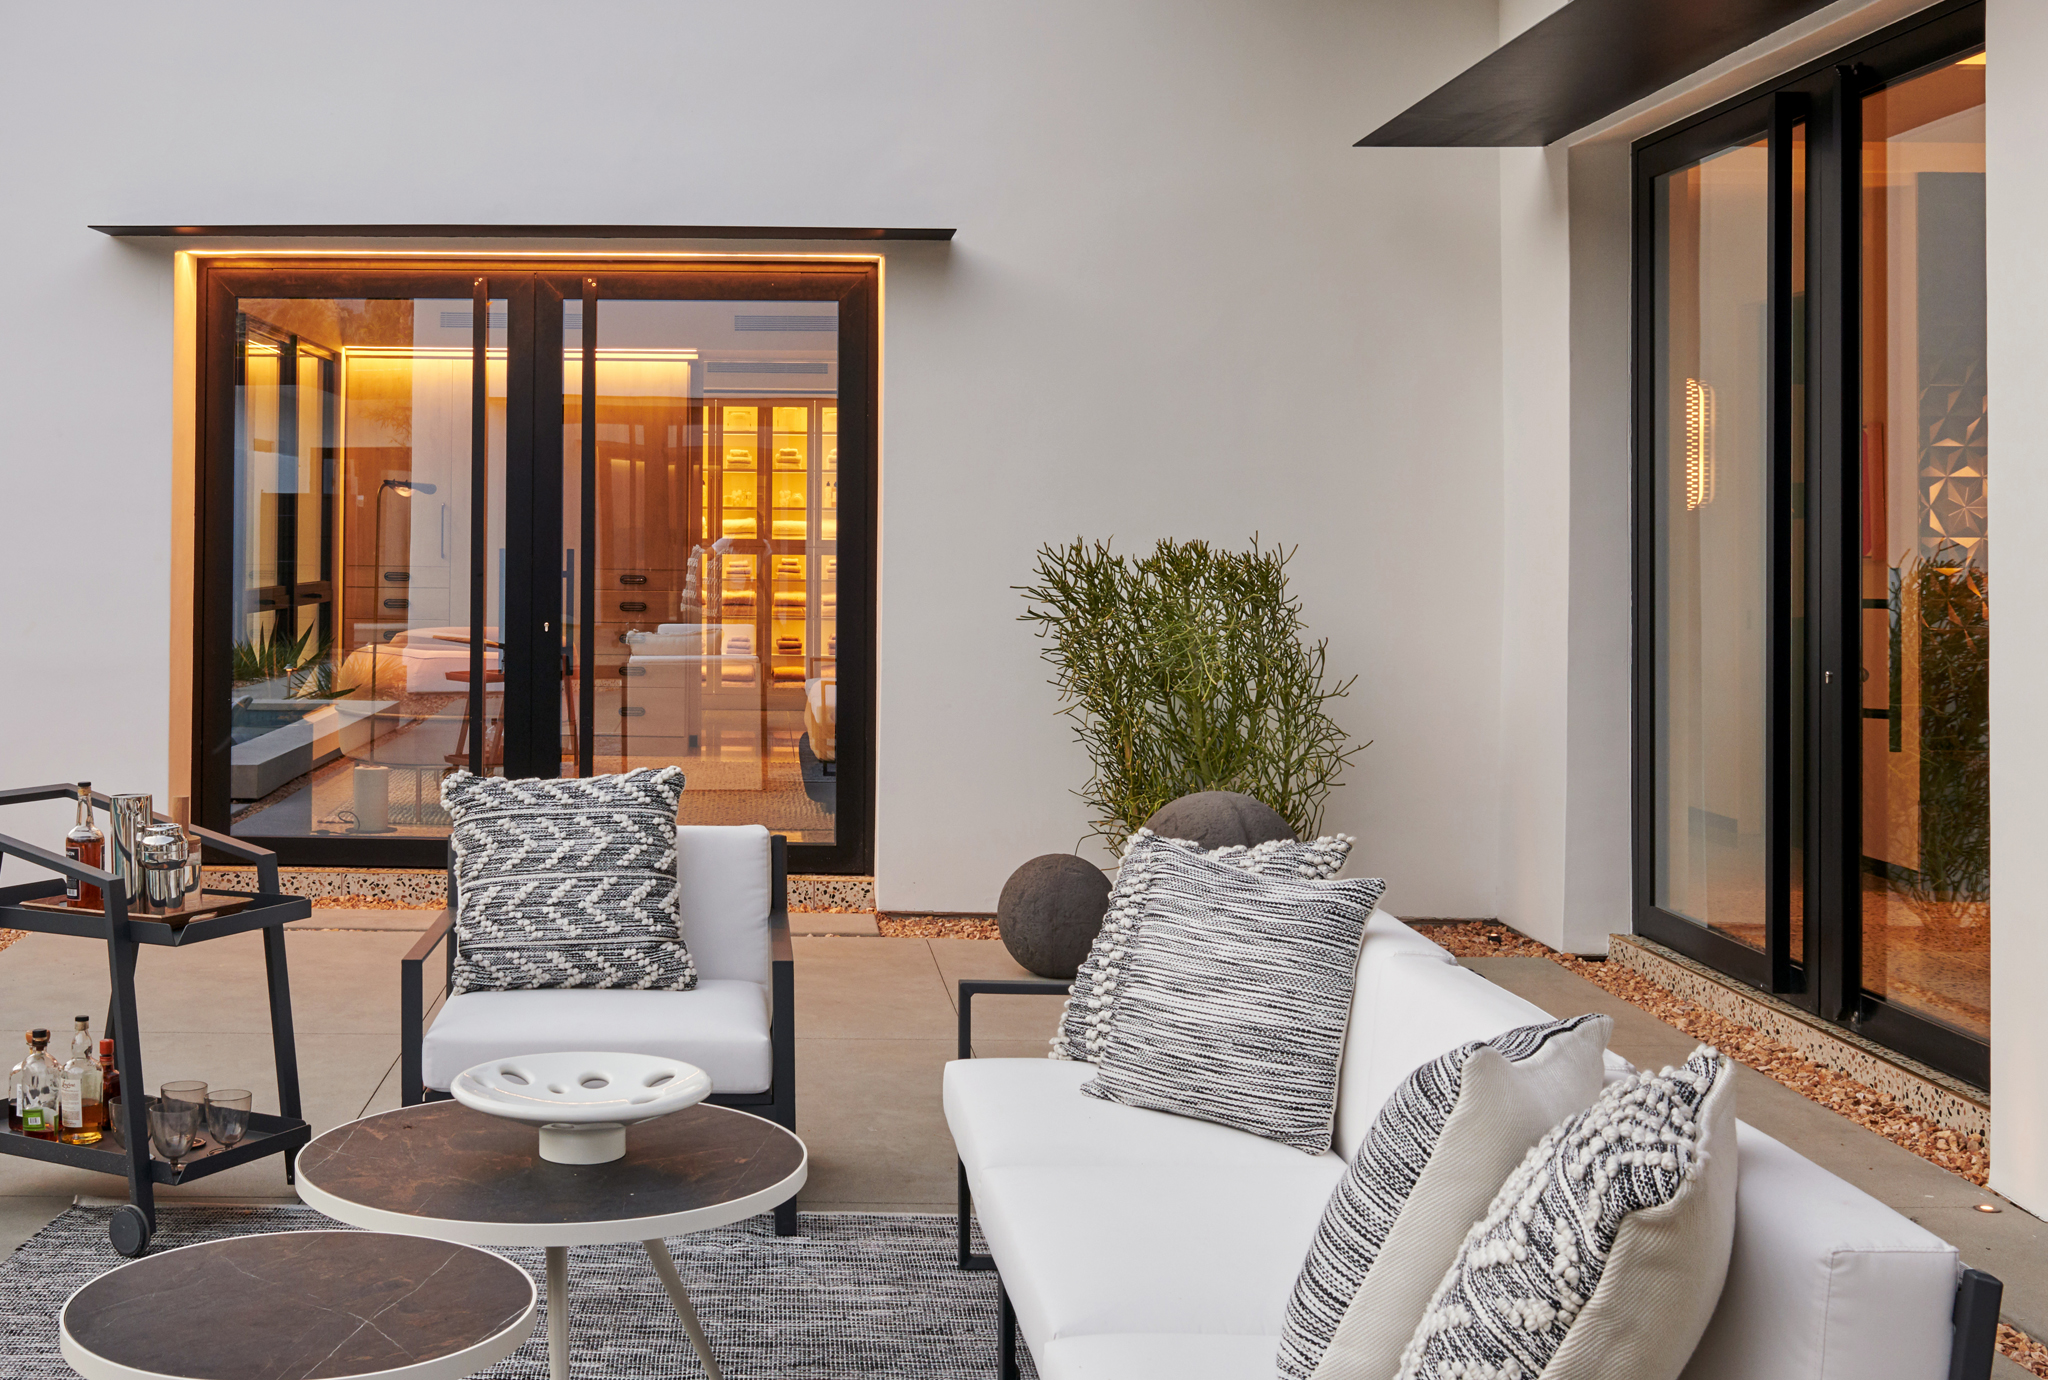 Minimal frame double leaf aluminum pivot doors finished in a matte black are featured in this California villa